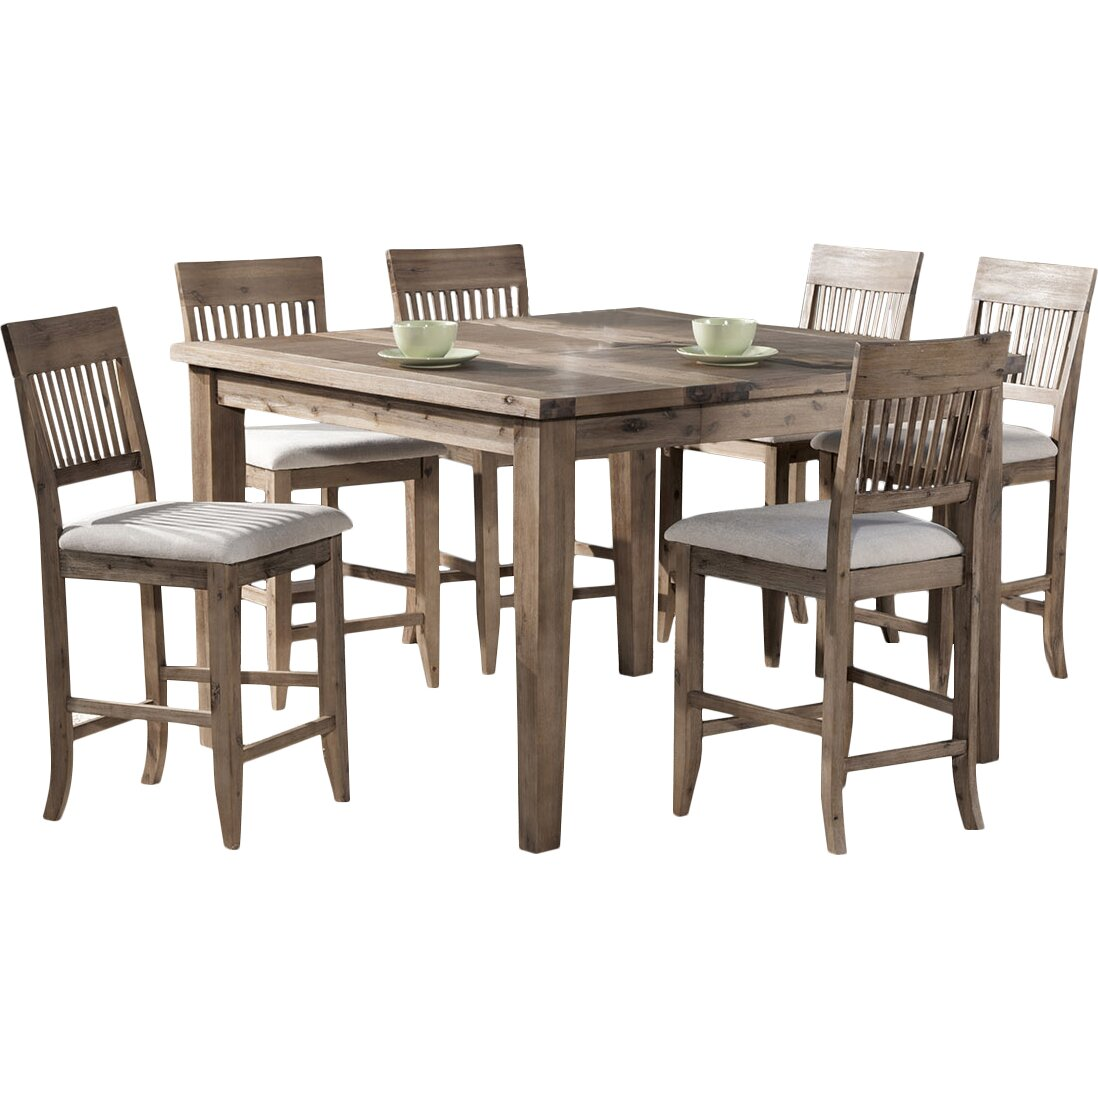 Beachcrest home casco 7 piece dining set reviews wayfair for Furniture 7 reviews